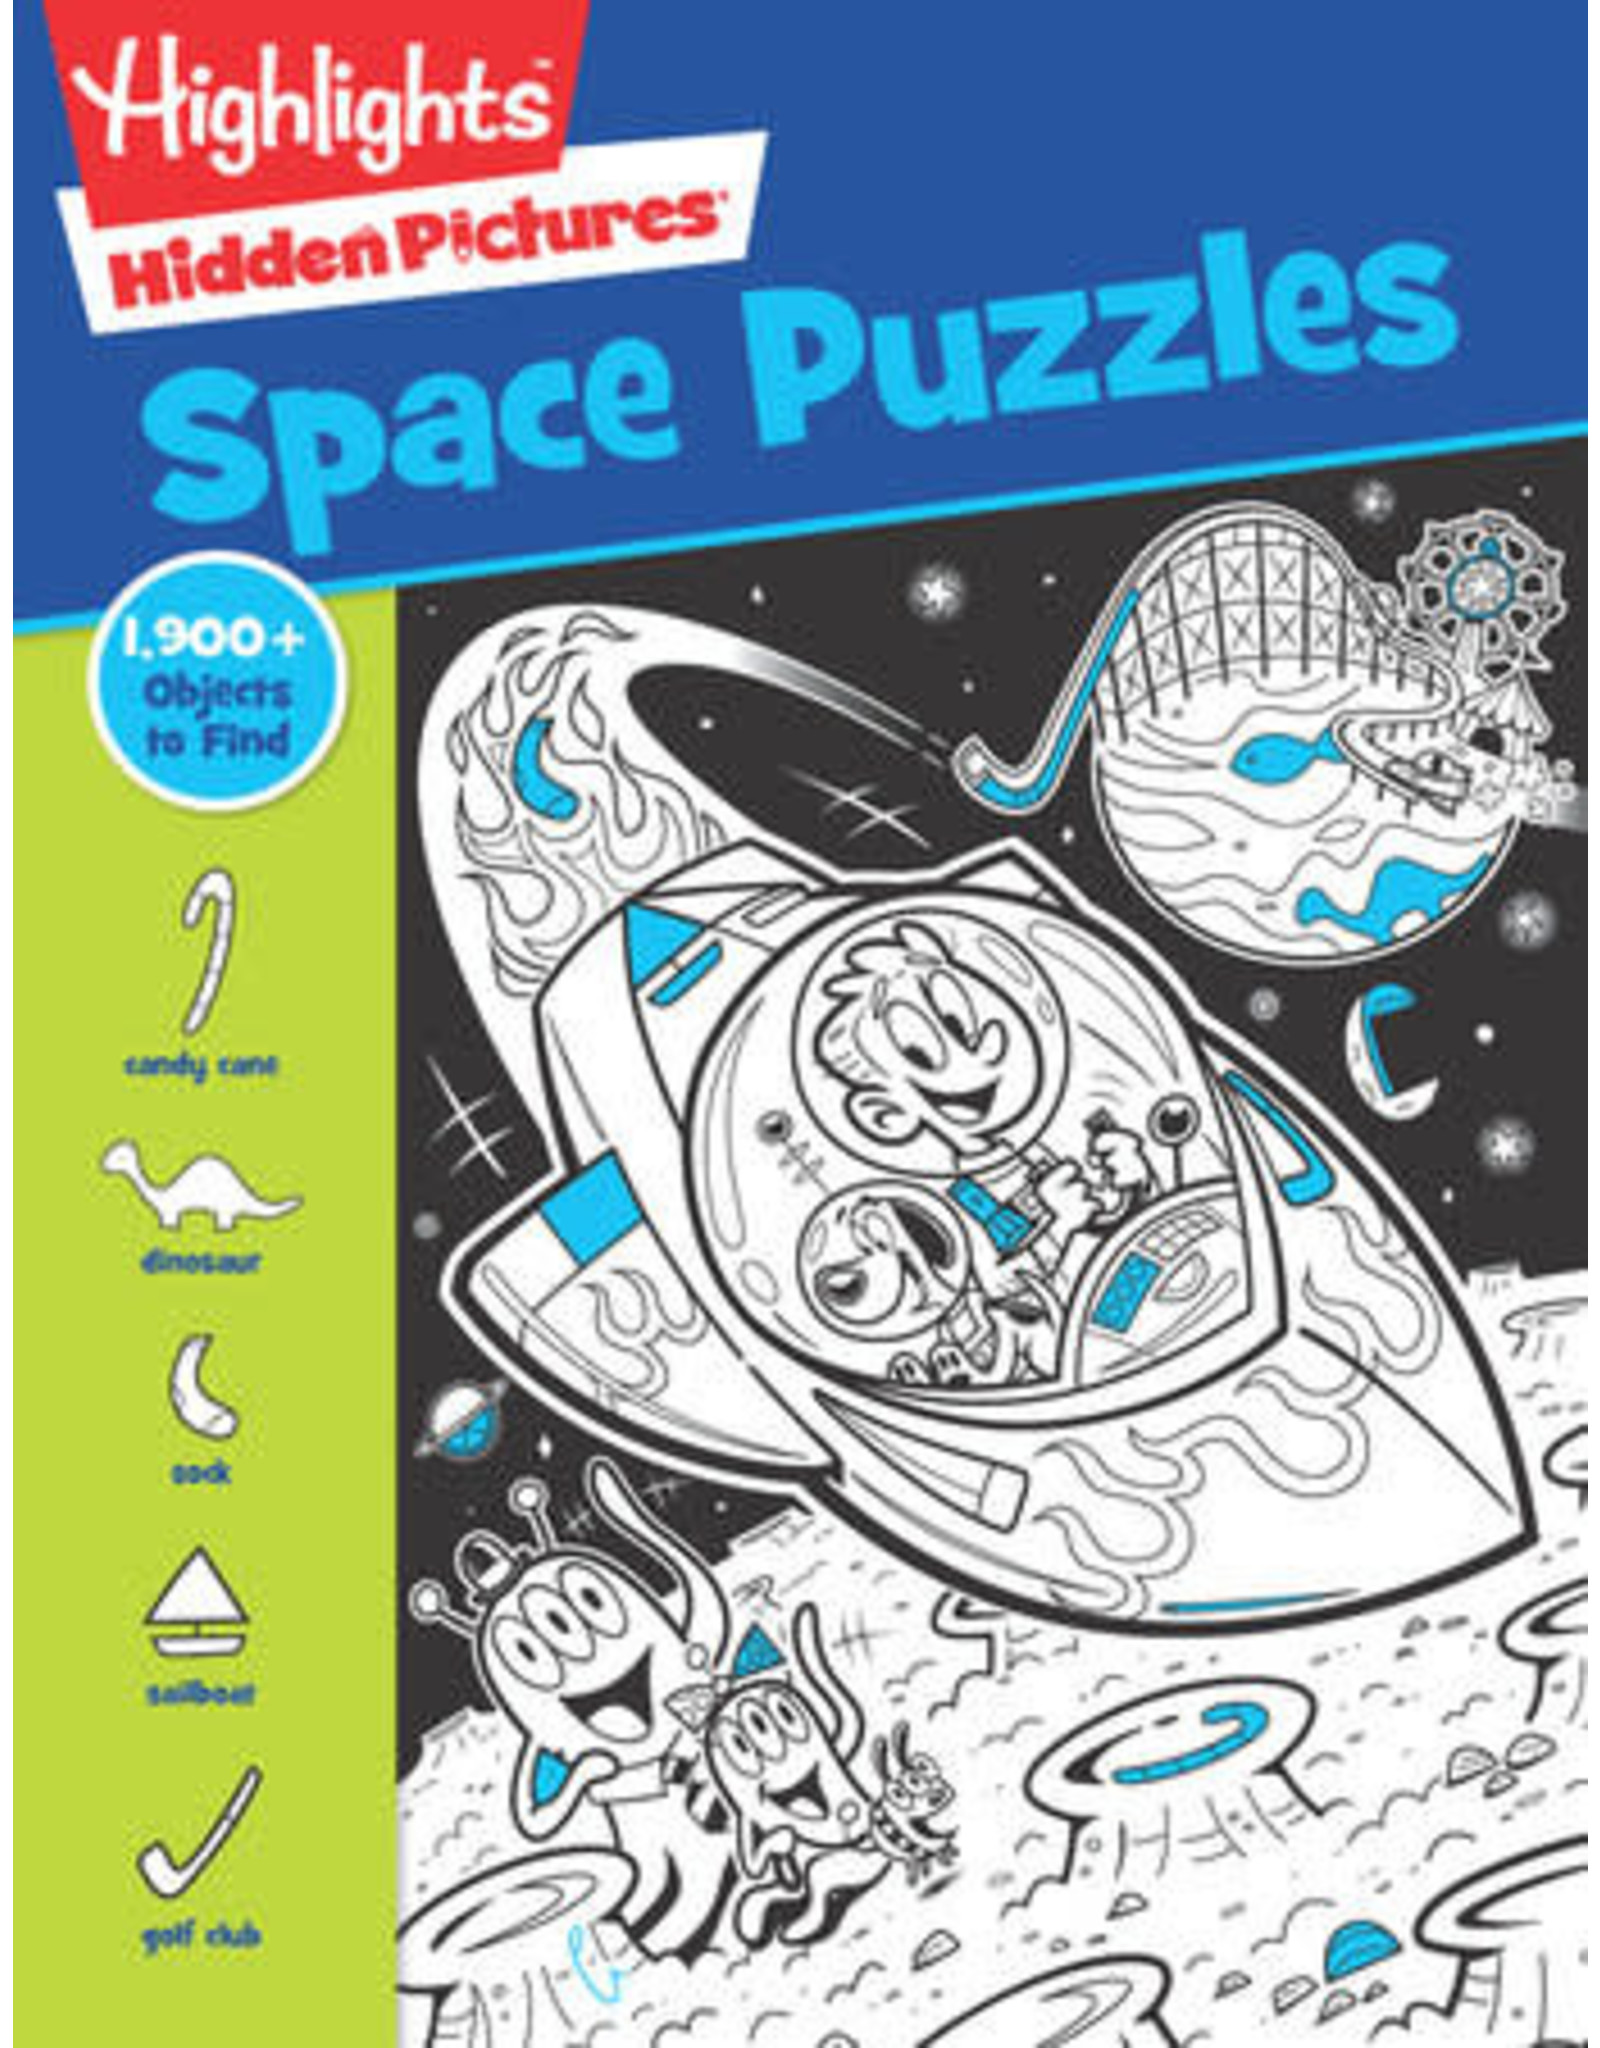 Highlights Highlights Space Puzzles